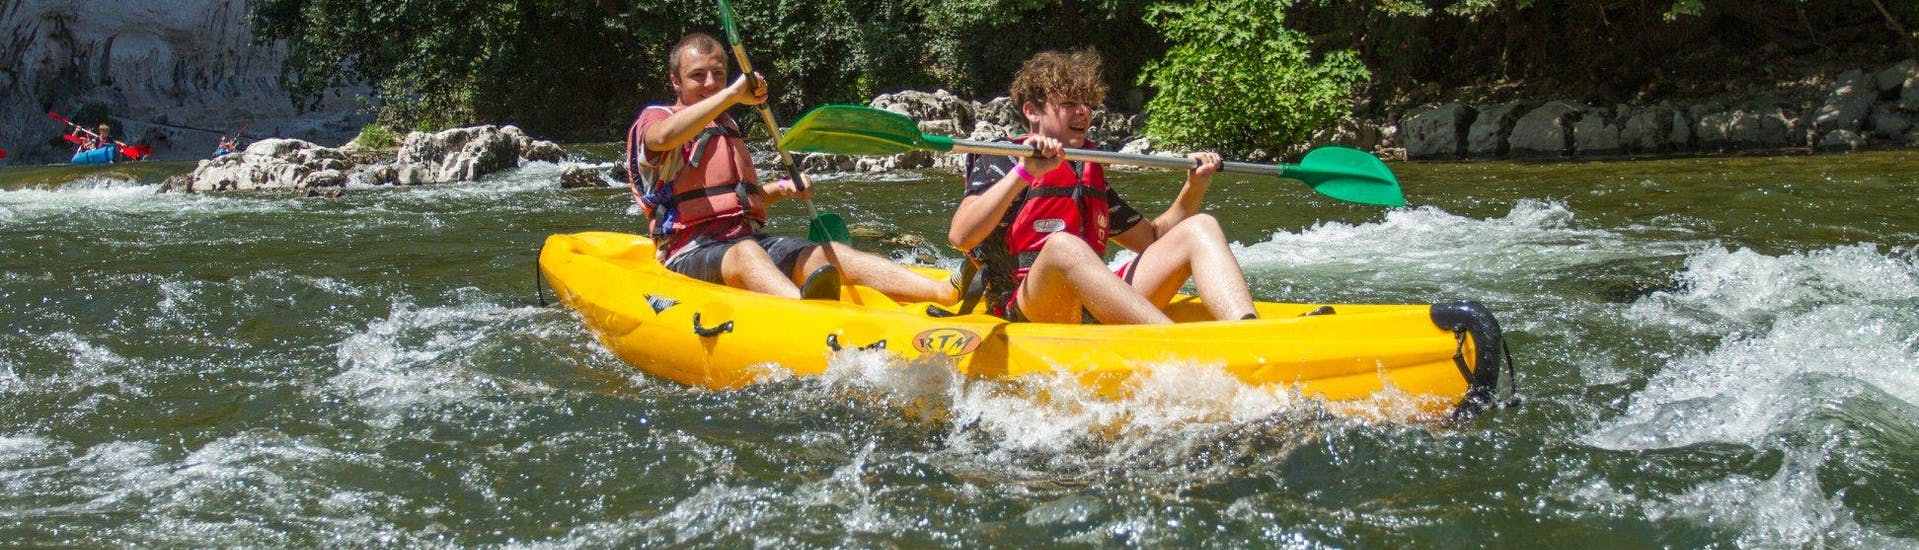 Two young boys having fun on a 12km Canoe Hire in Ardèche - Maxi-Tour provided by Viking Bateaux.